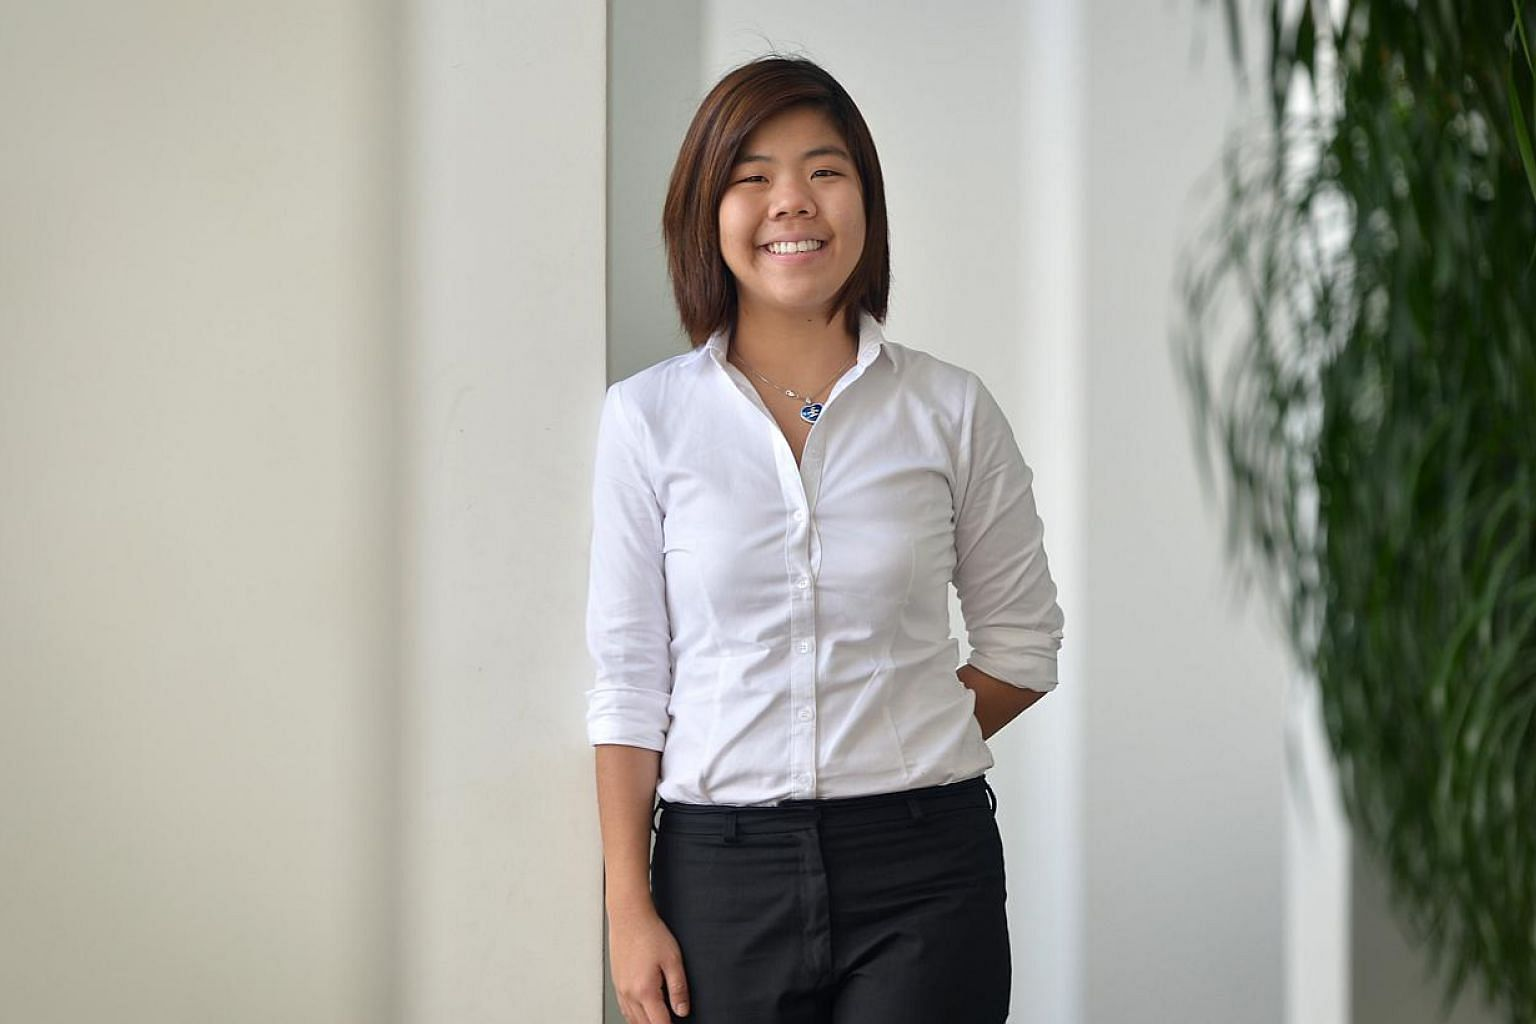 JUST 26, SHE HAS MADE HER MILLION: Property agent Shirley Seng, 26, hit a $1.5 million jackpot last month when she sold a penthouse in Le Nouvel Ardmore for $51 million. It is believed to be a record price for a penthouse in Singapore and made the Na